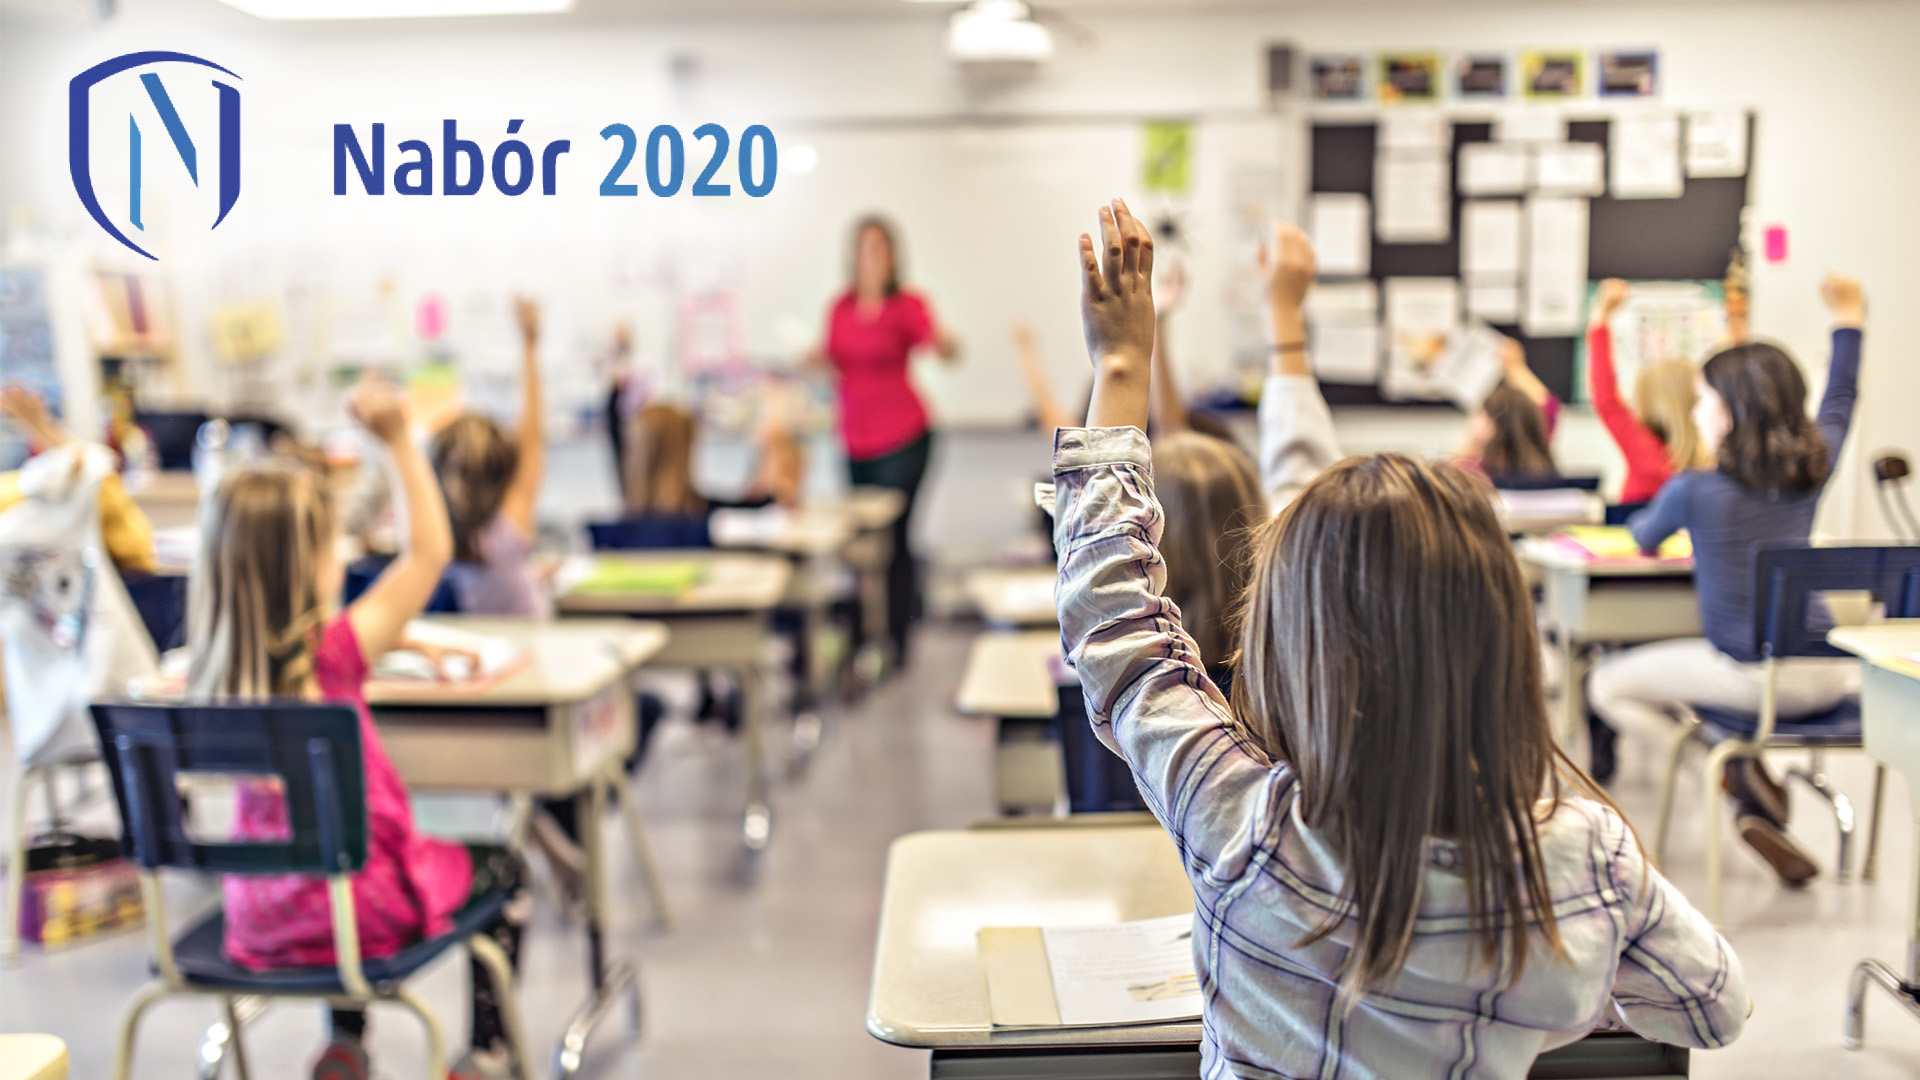 Additional implementations in the Nabor 2020 system